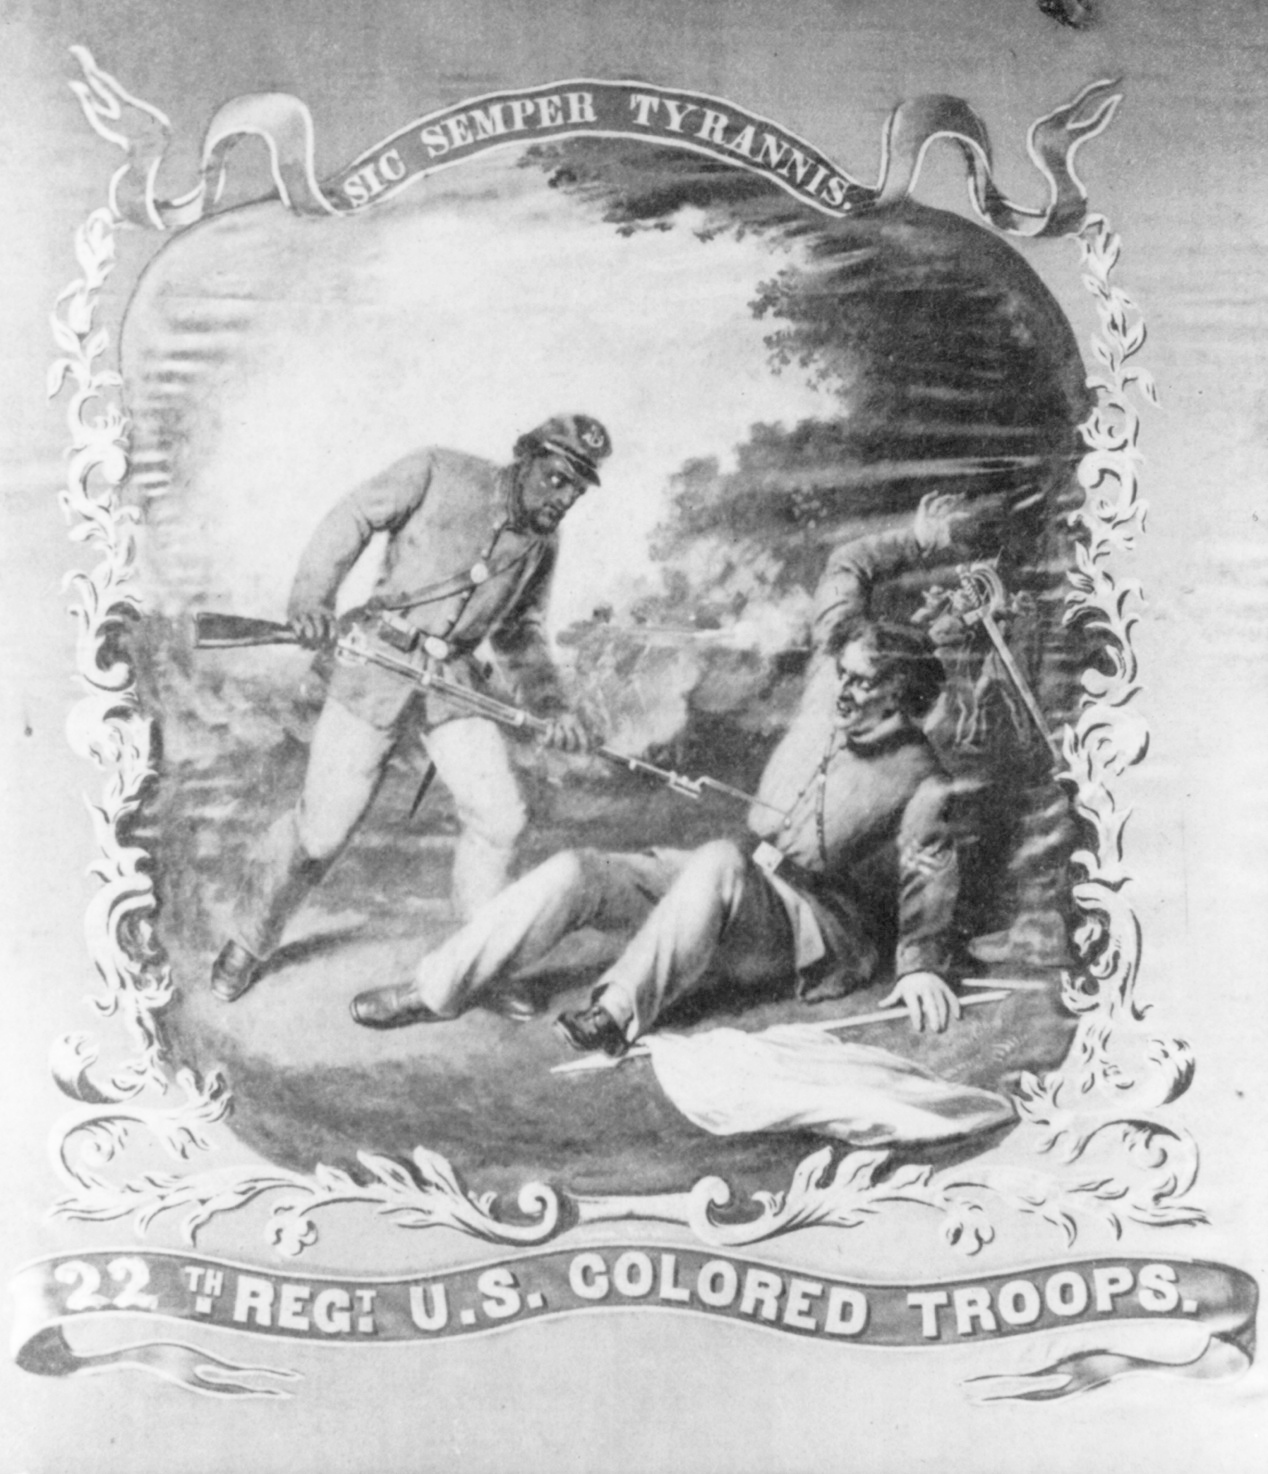 United States Colored Troop - 22nd Regiment Banner